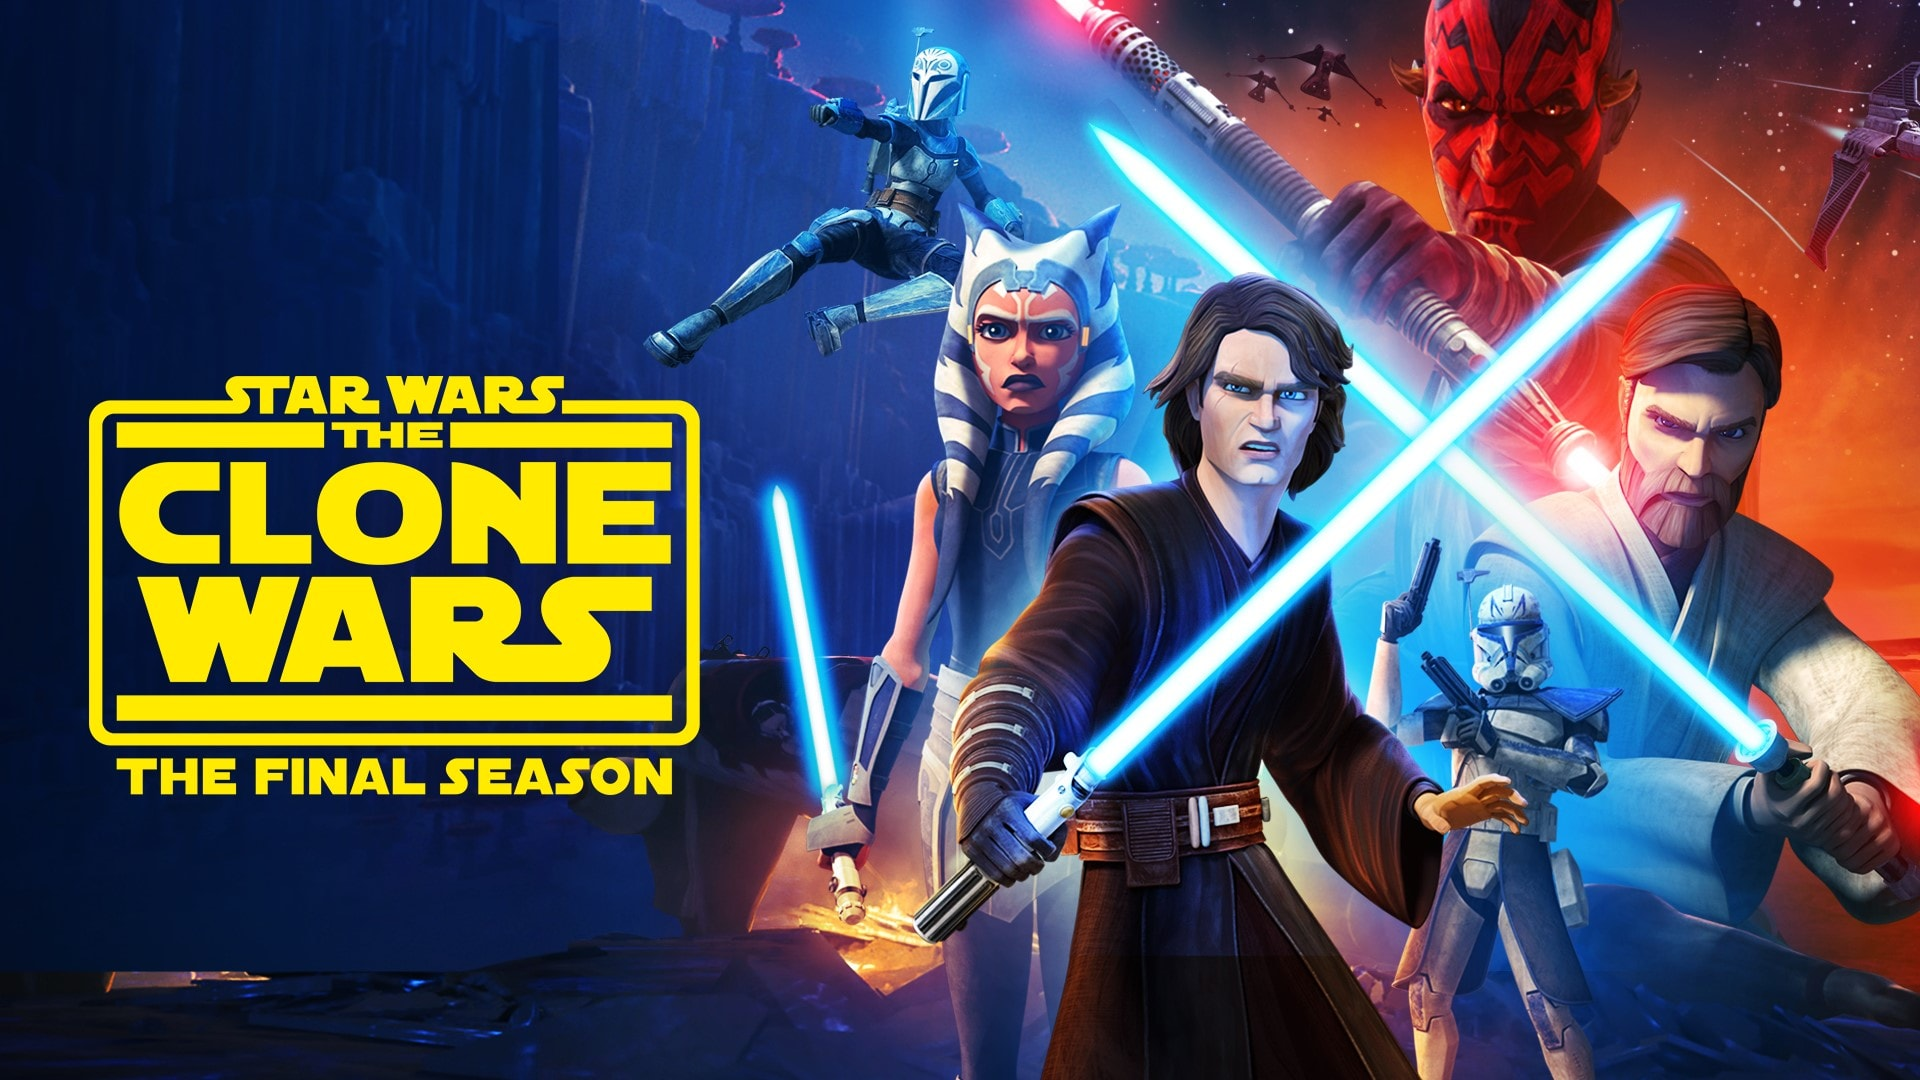 Star Wars Season 7 Wallpaper